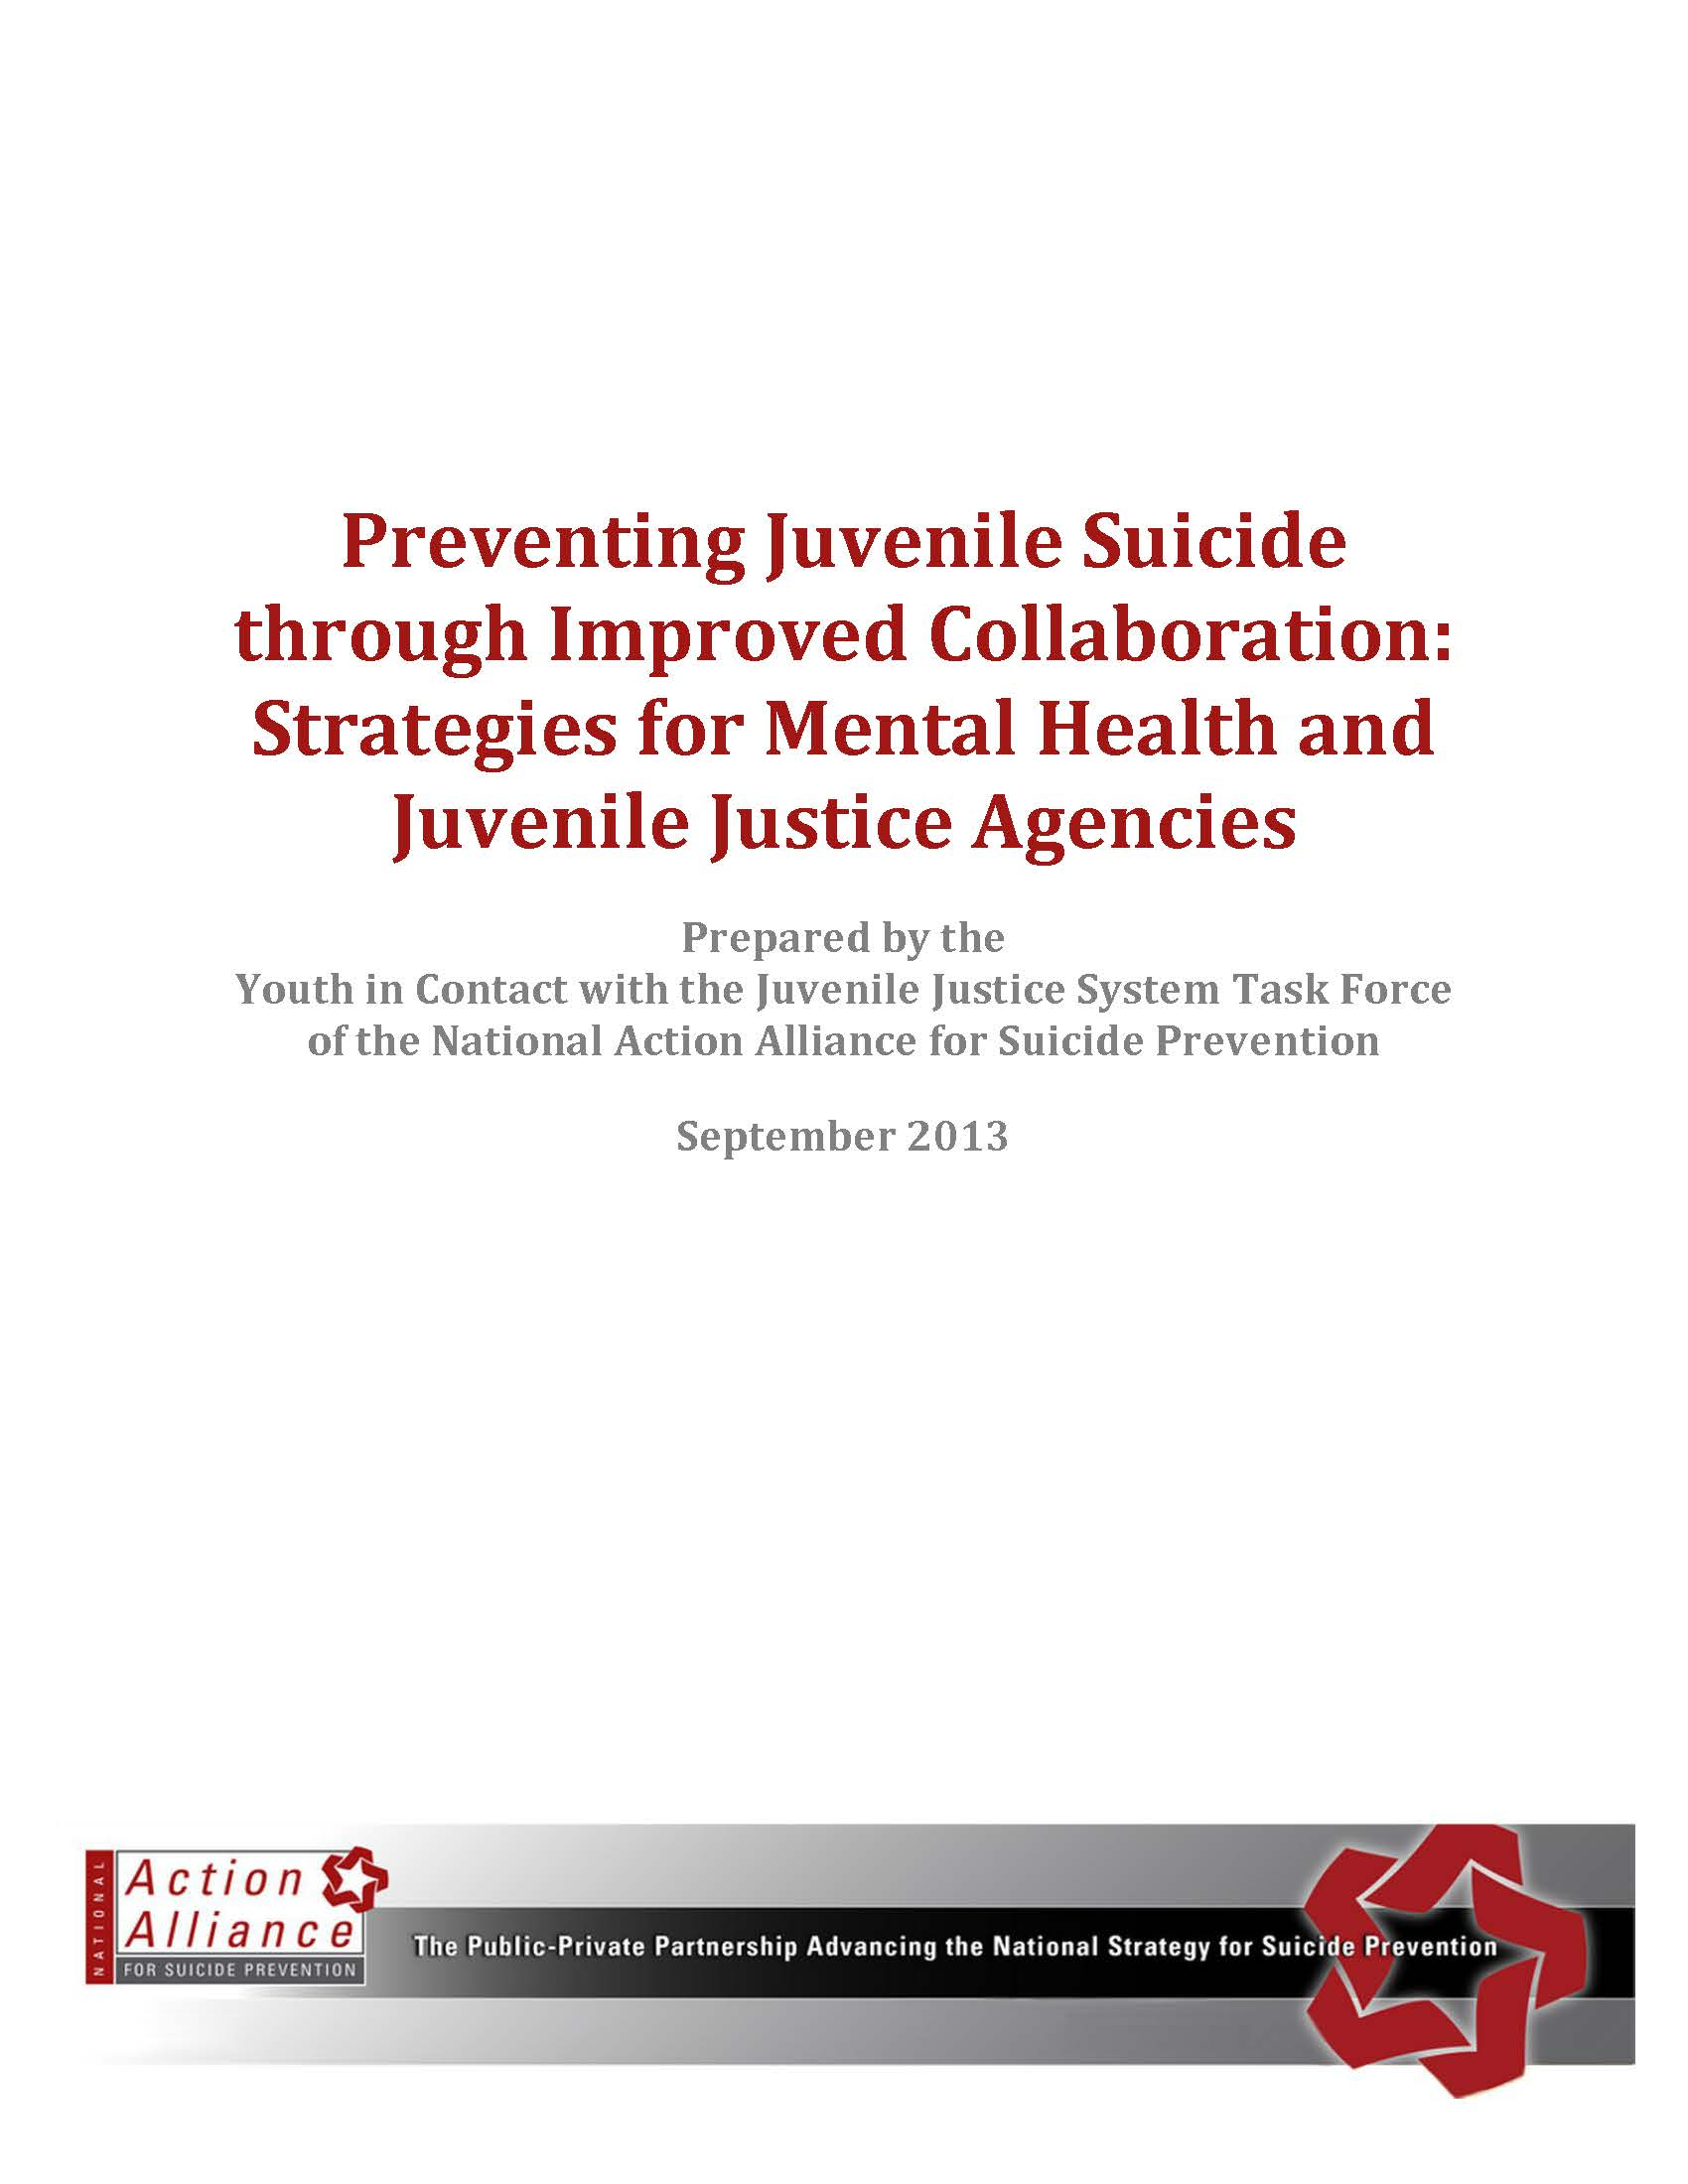 Guide to Developing and Revising Suicide Prevention Protocols for Youth in Contact with the Juvenile Justice System